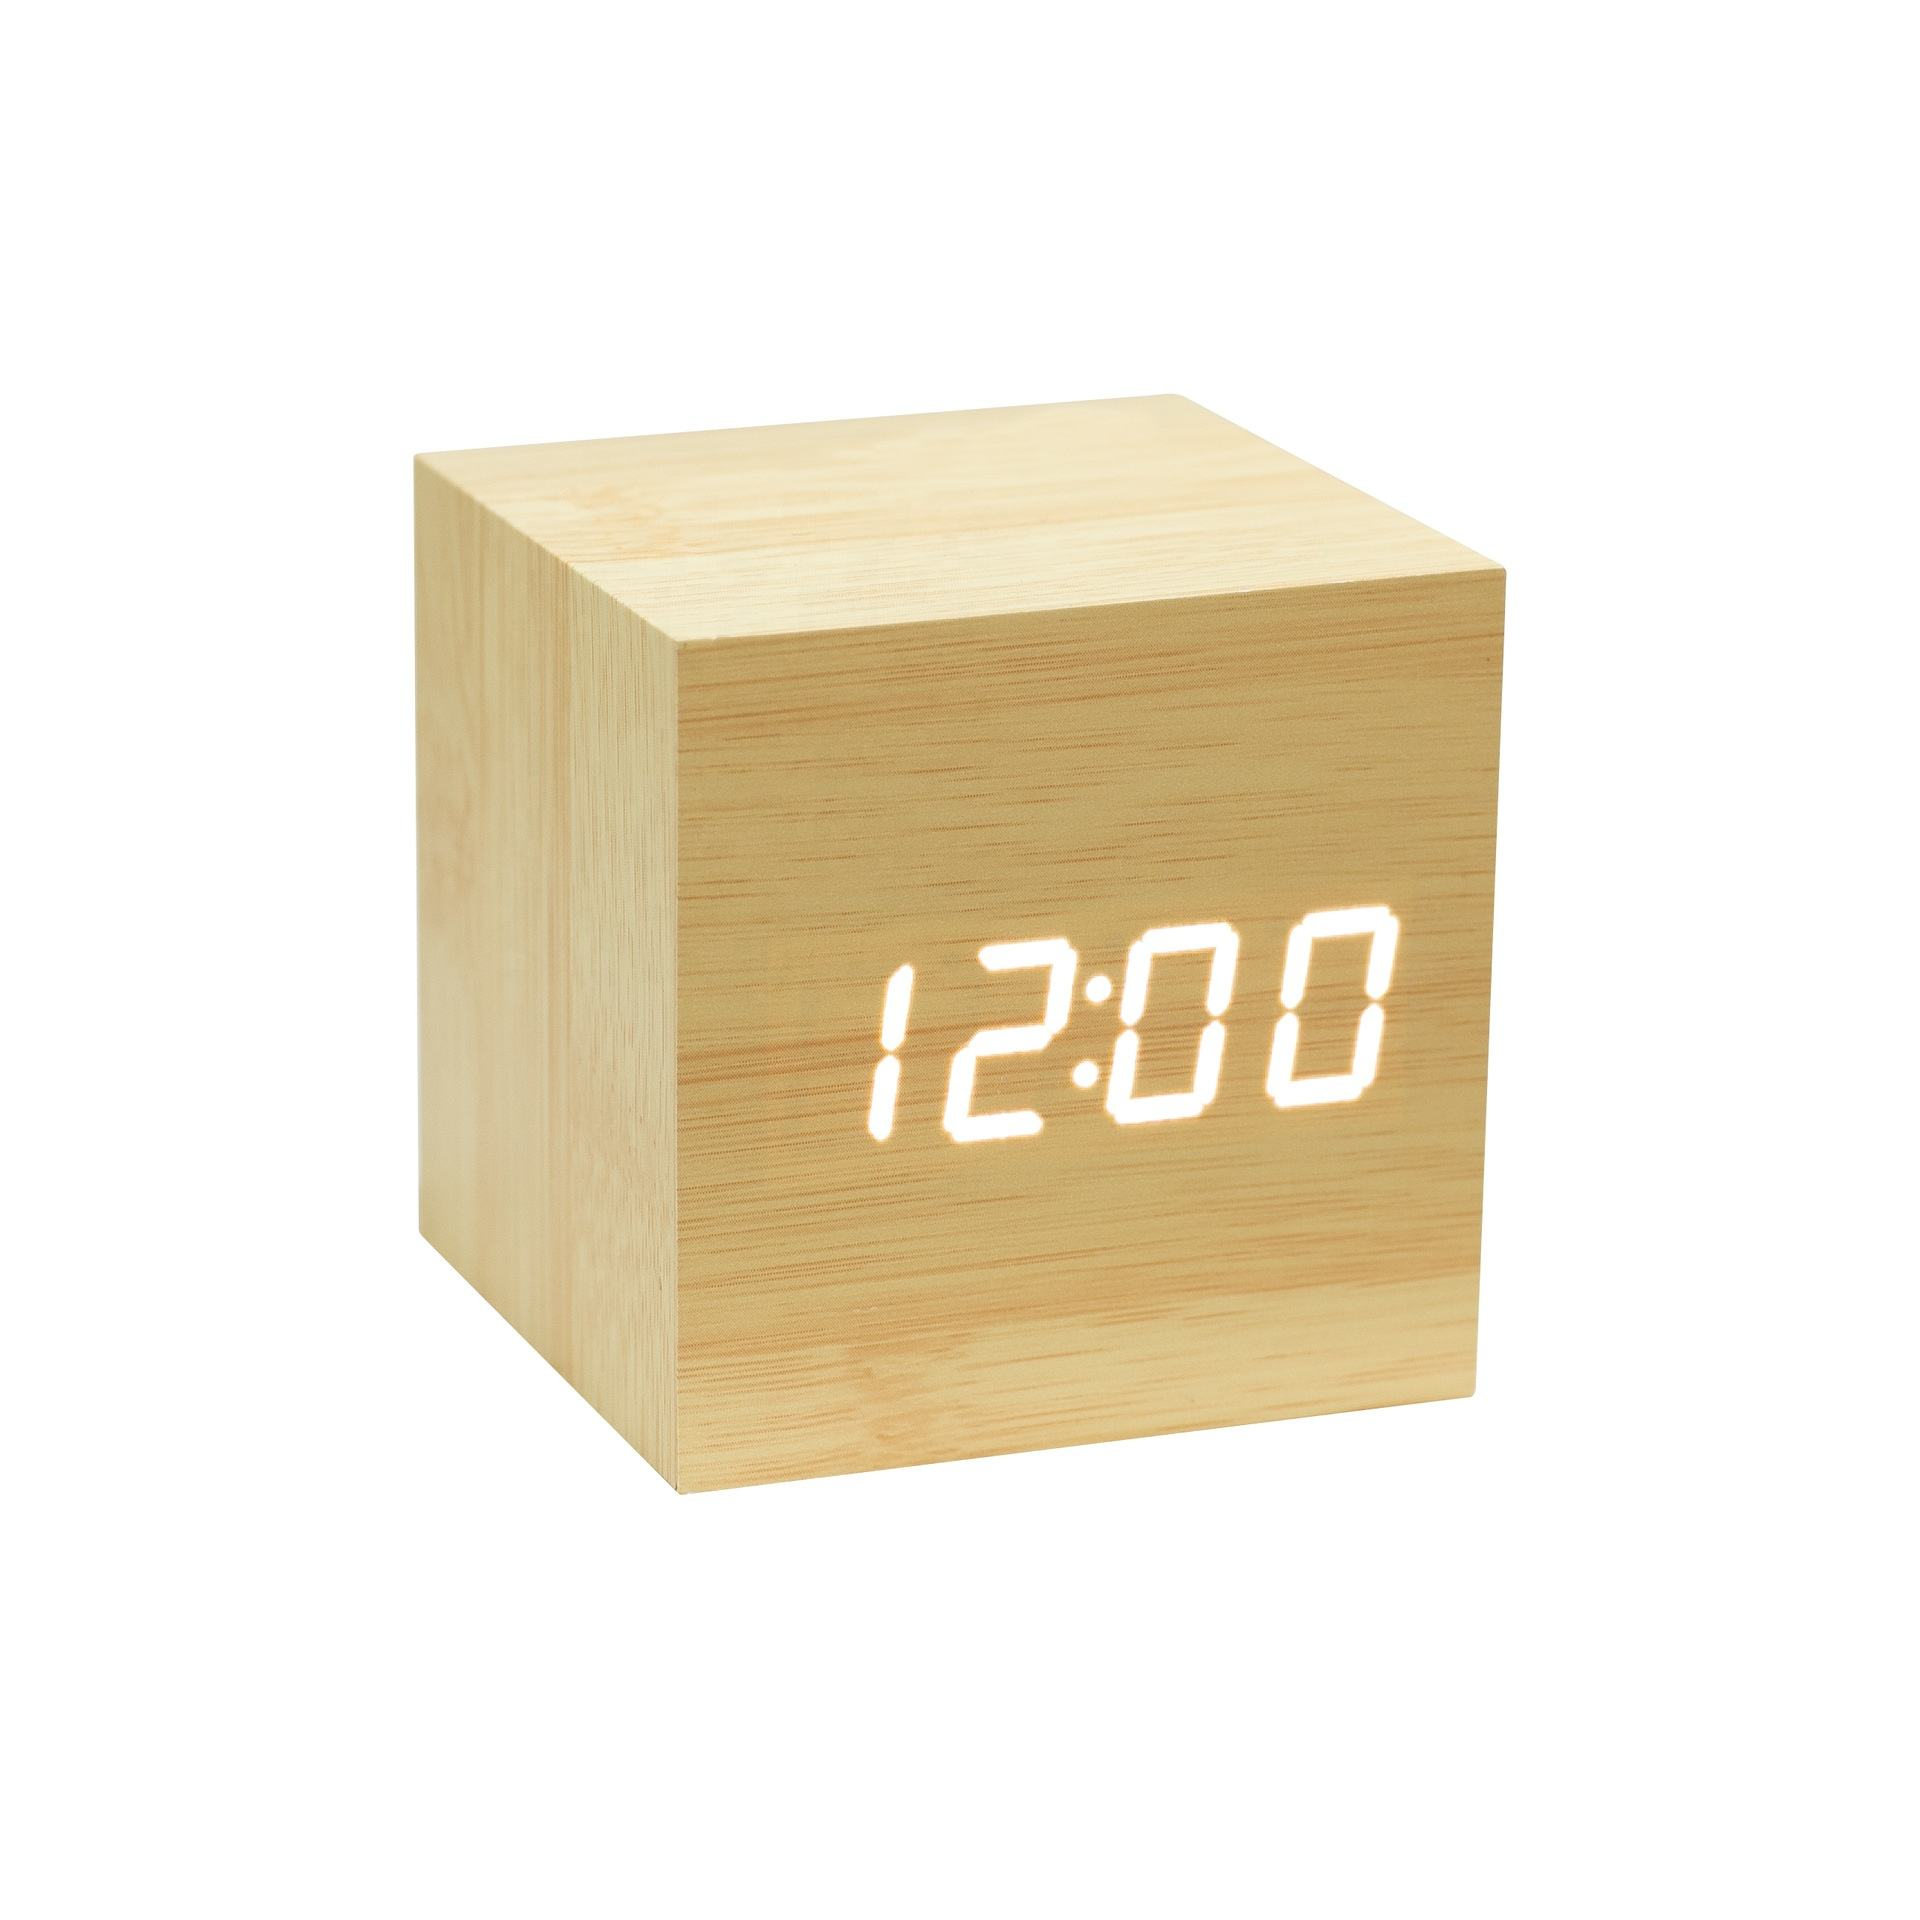 KH-WC001 Office Electronic Digital Cube Wooden LED Alarm Clock With Time Temperature Date Display